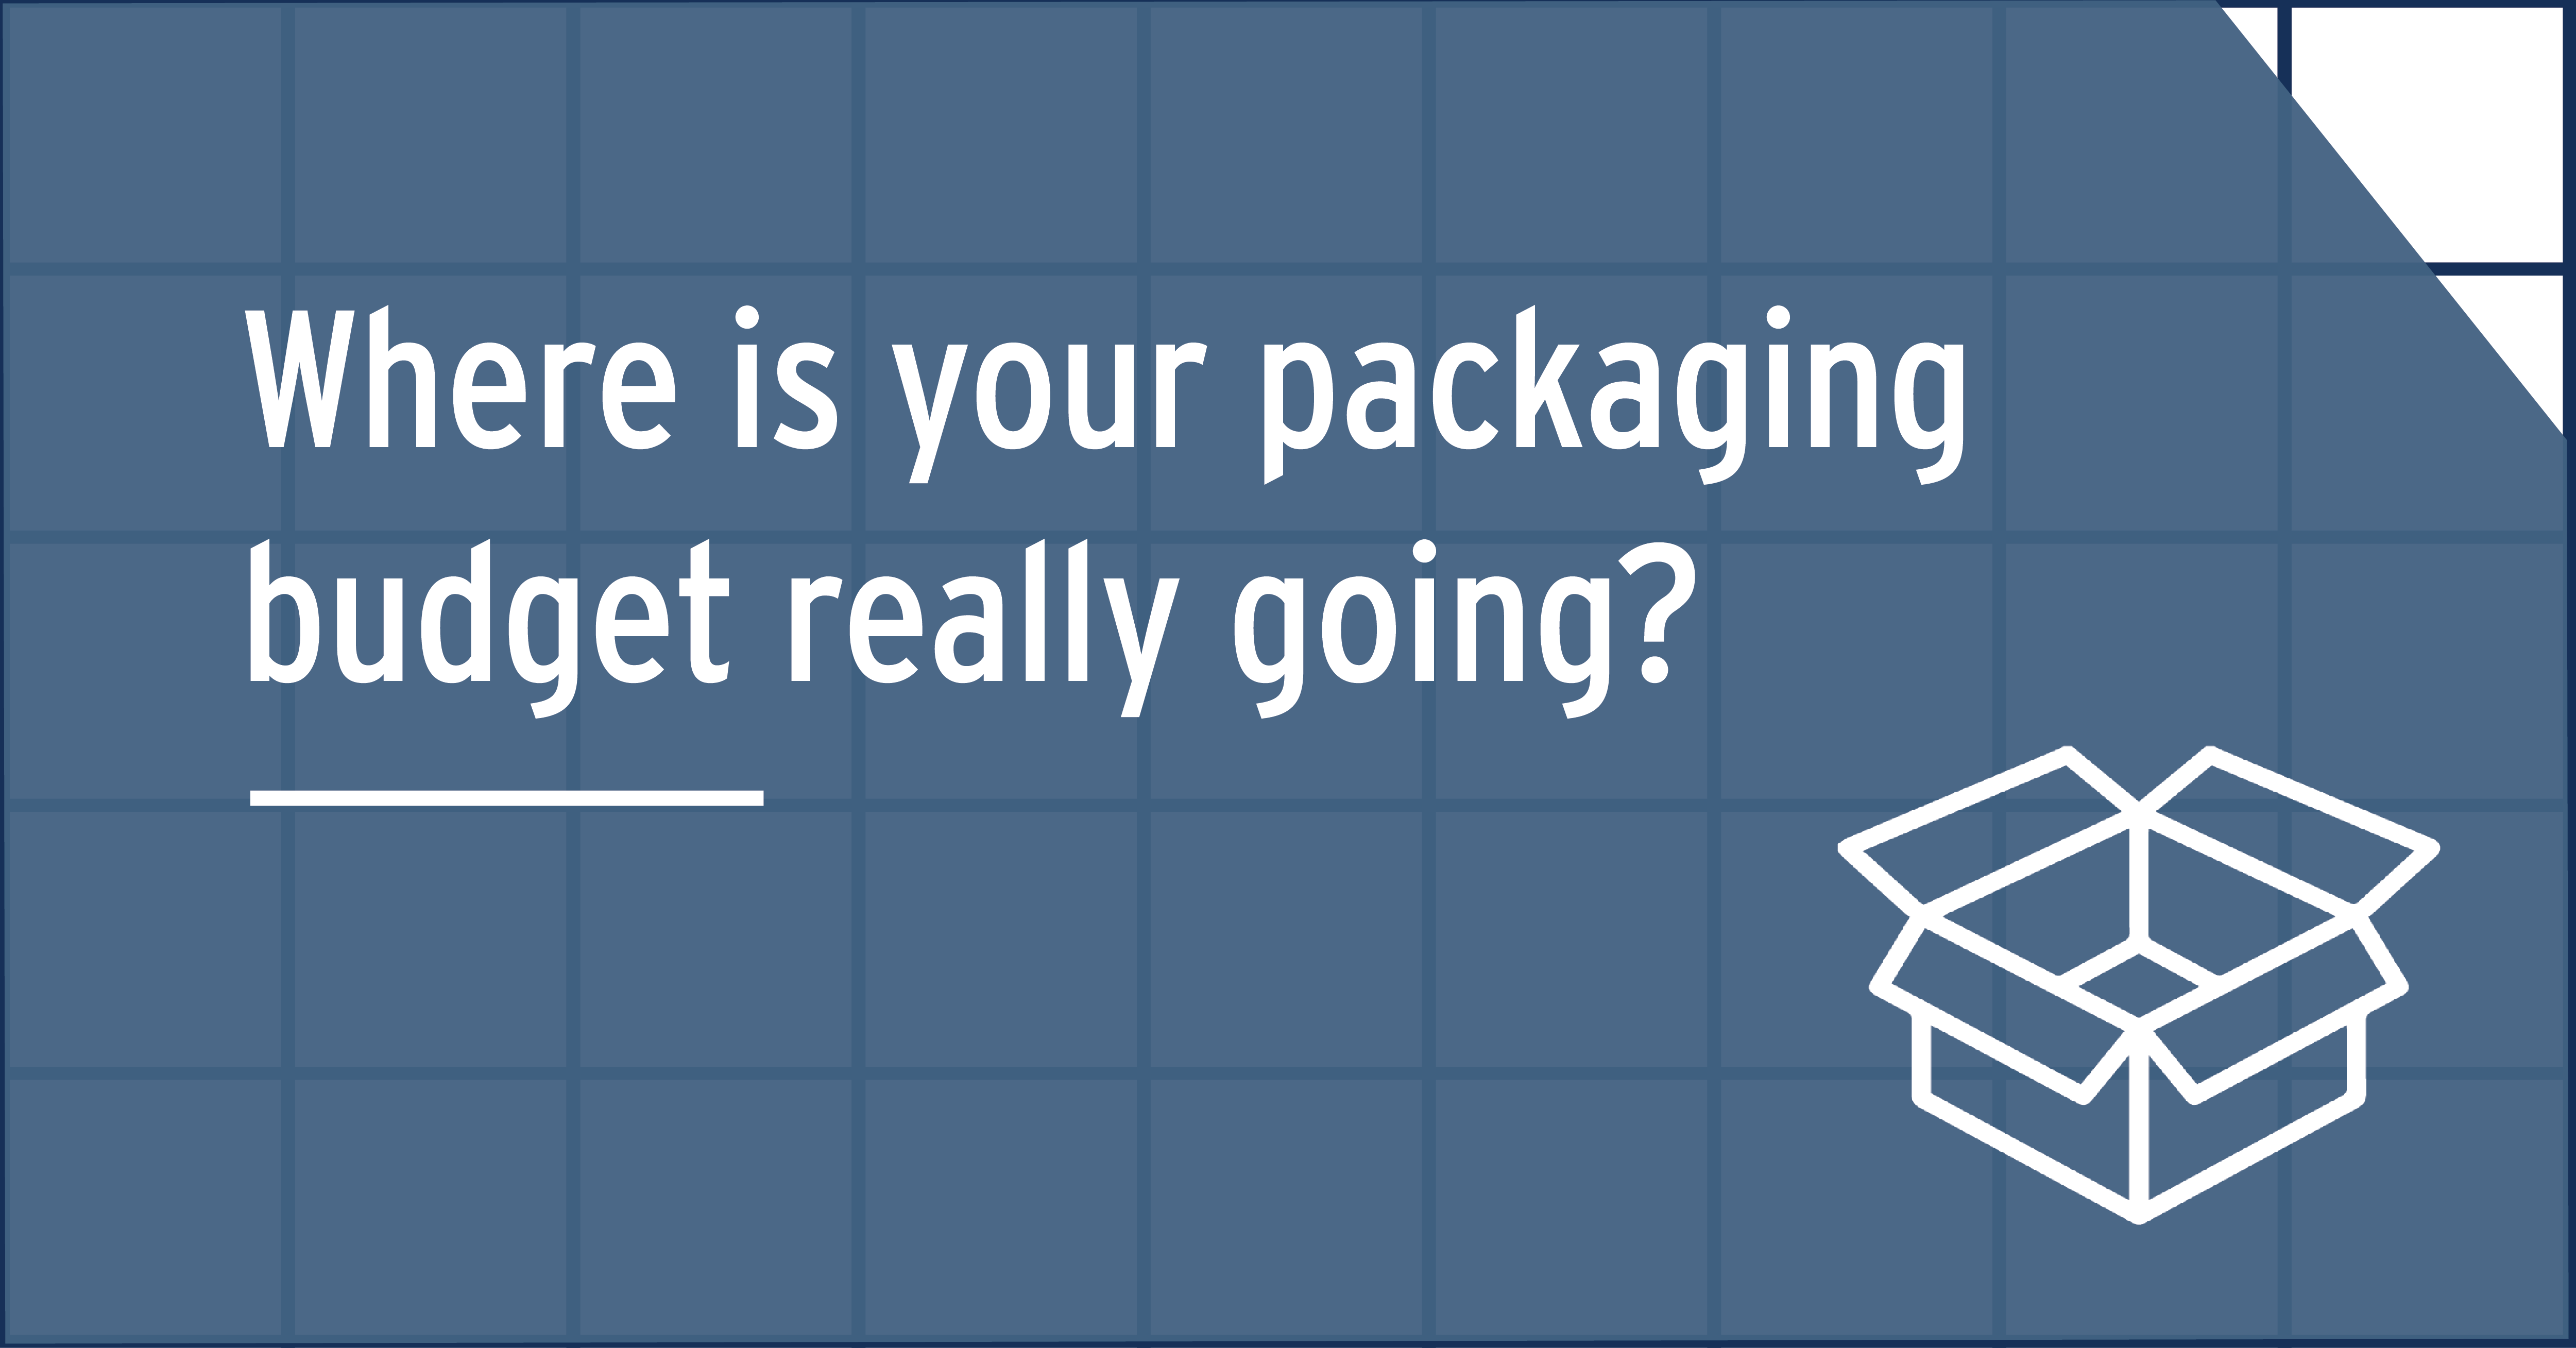 Does Your Packaging System Need an Overhaul? Conduct an Audit